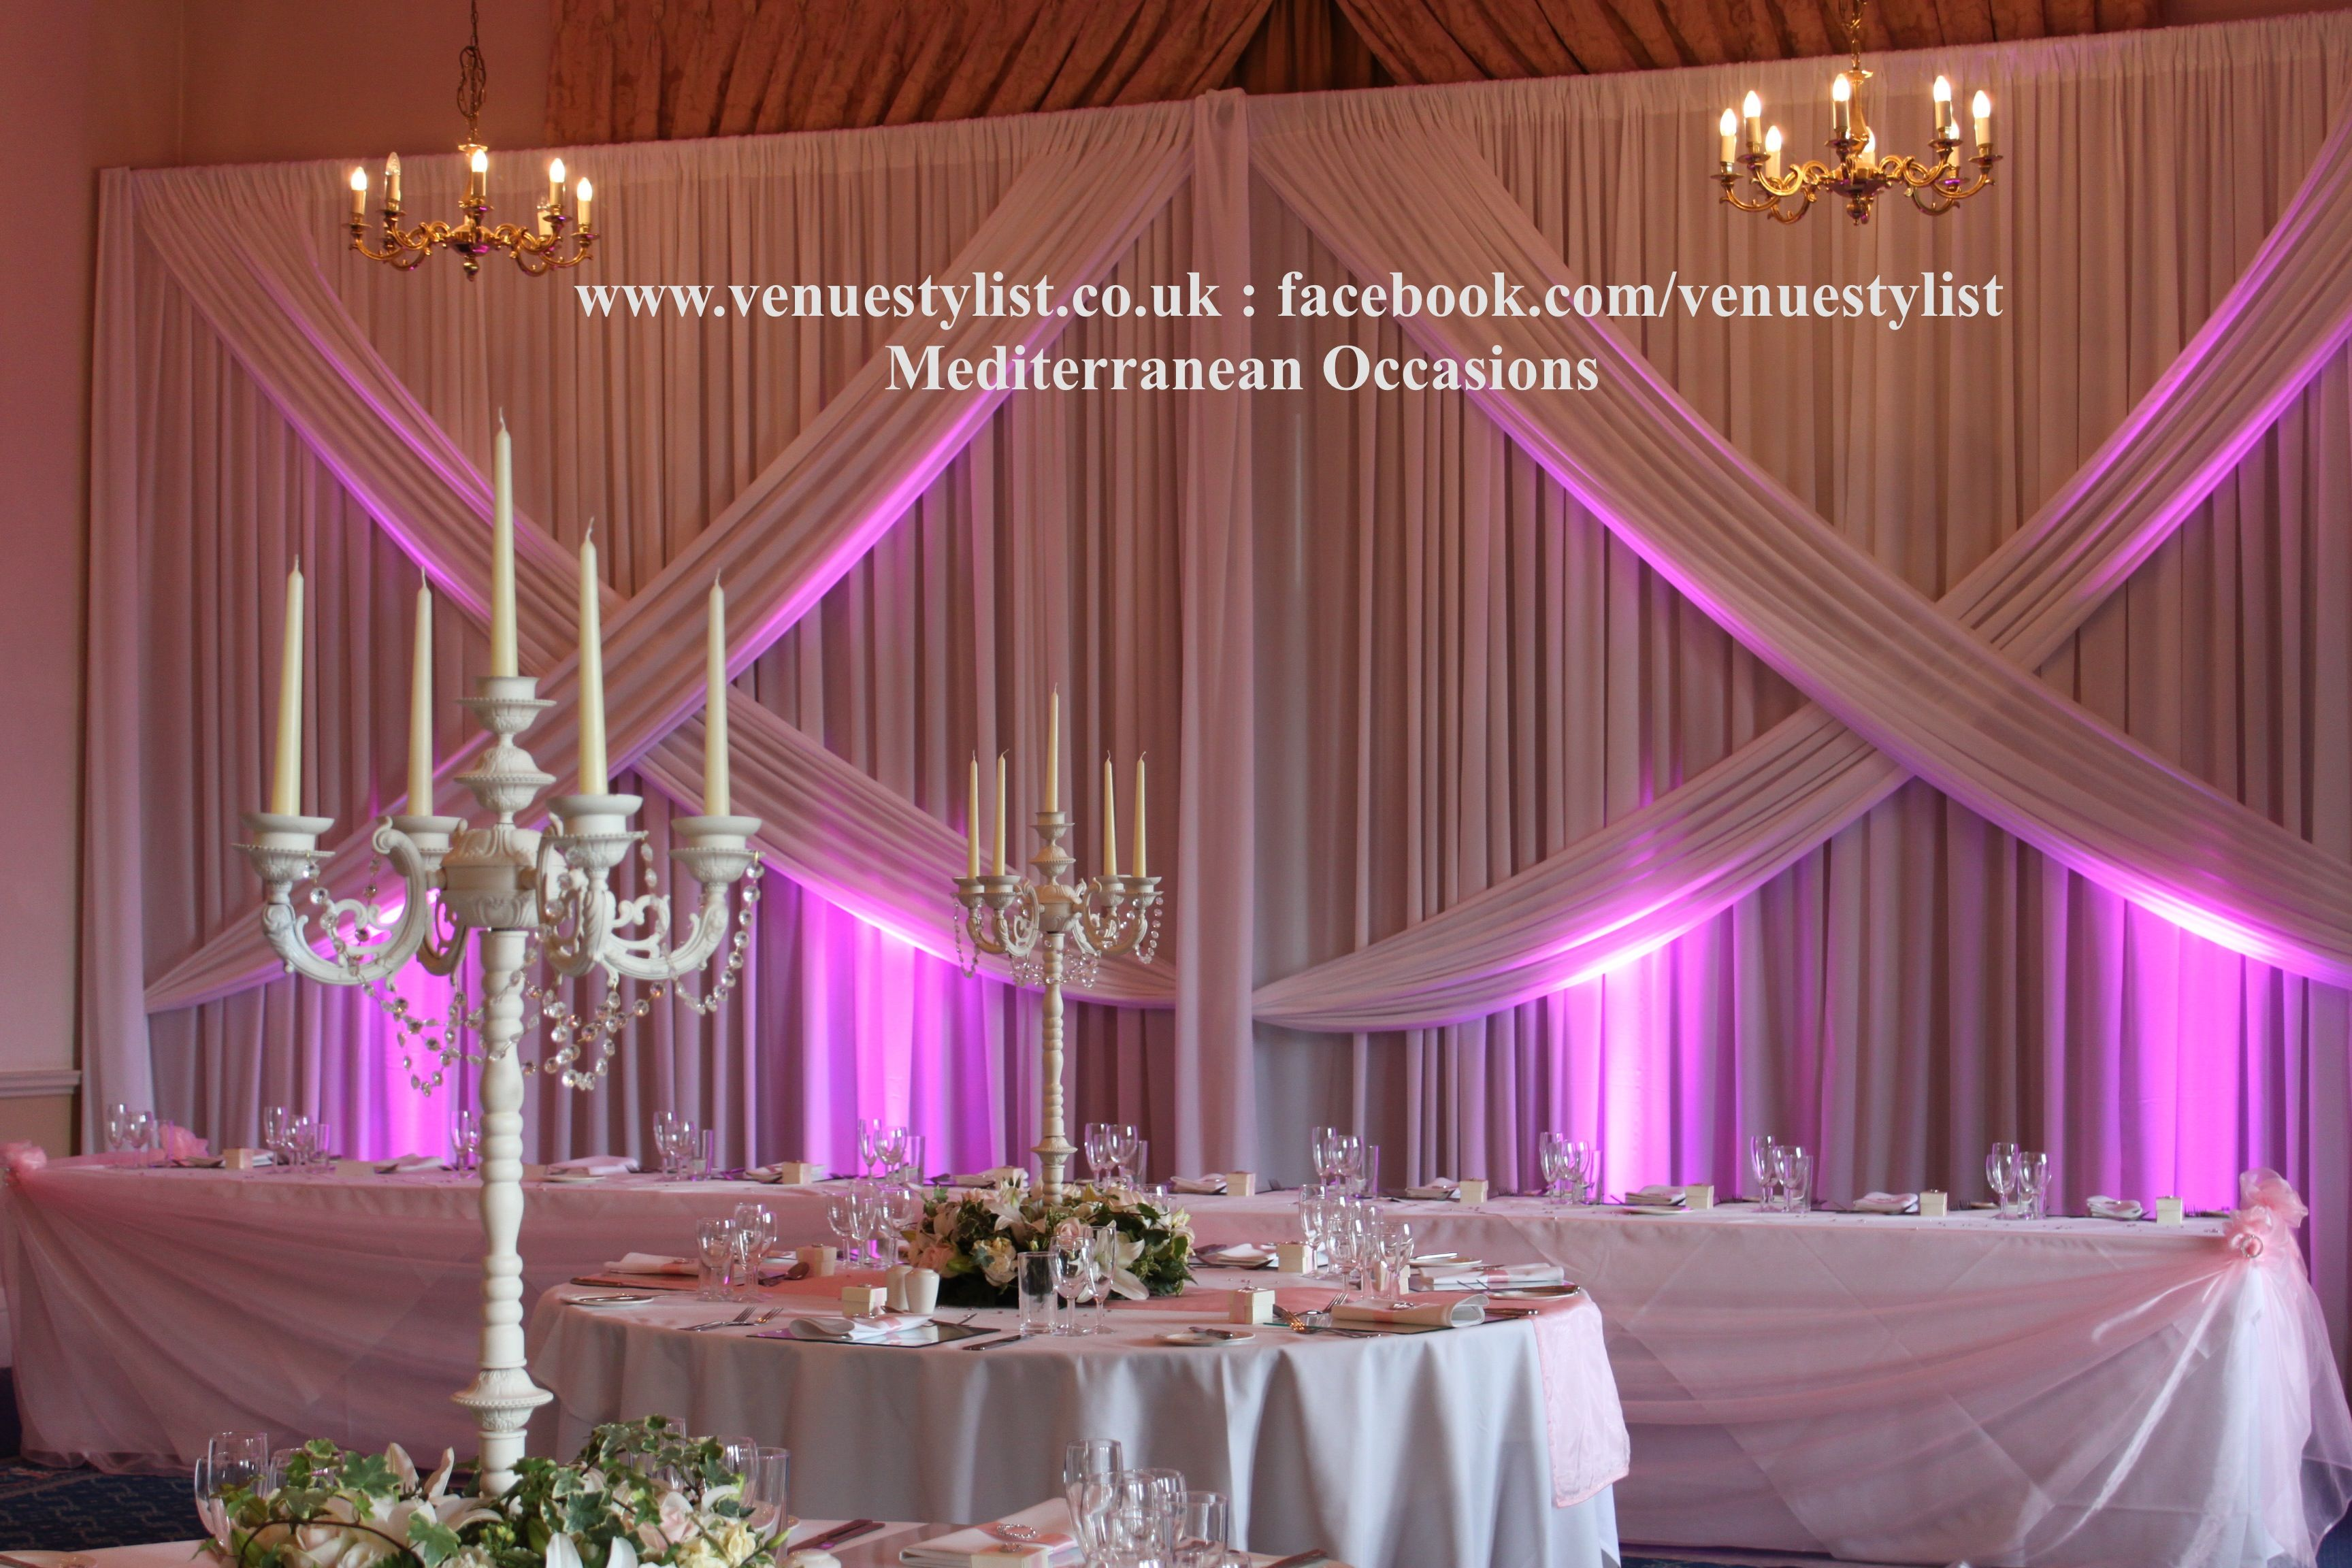 Columns ivory fabric uplighting wedding ceremony downtown double tree - Wedding Backdrop Criss Cross Drape